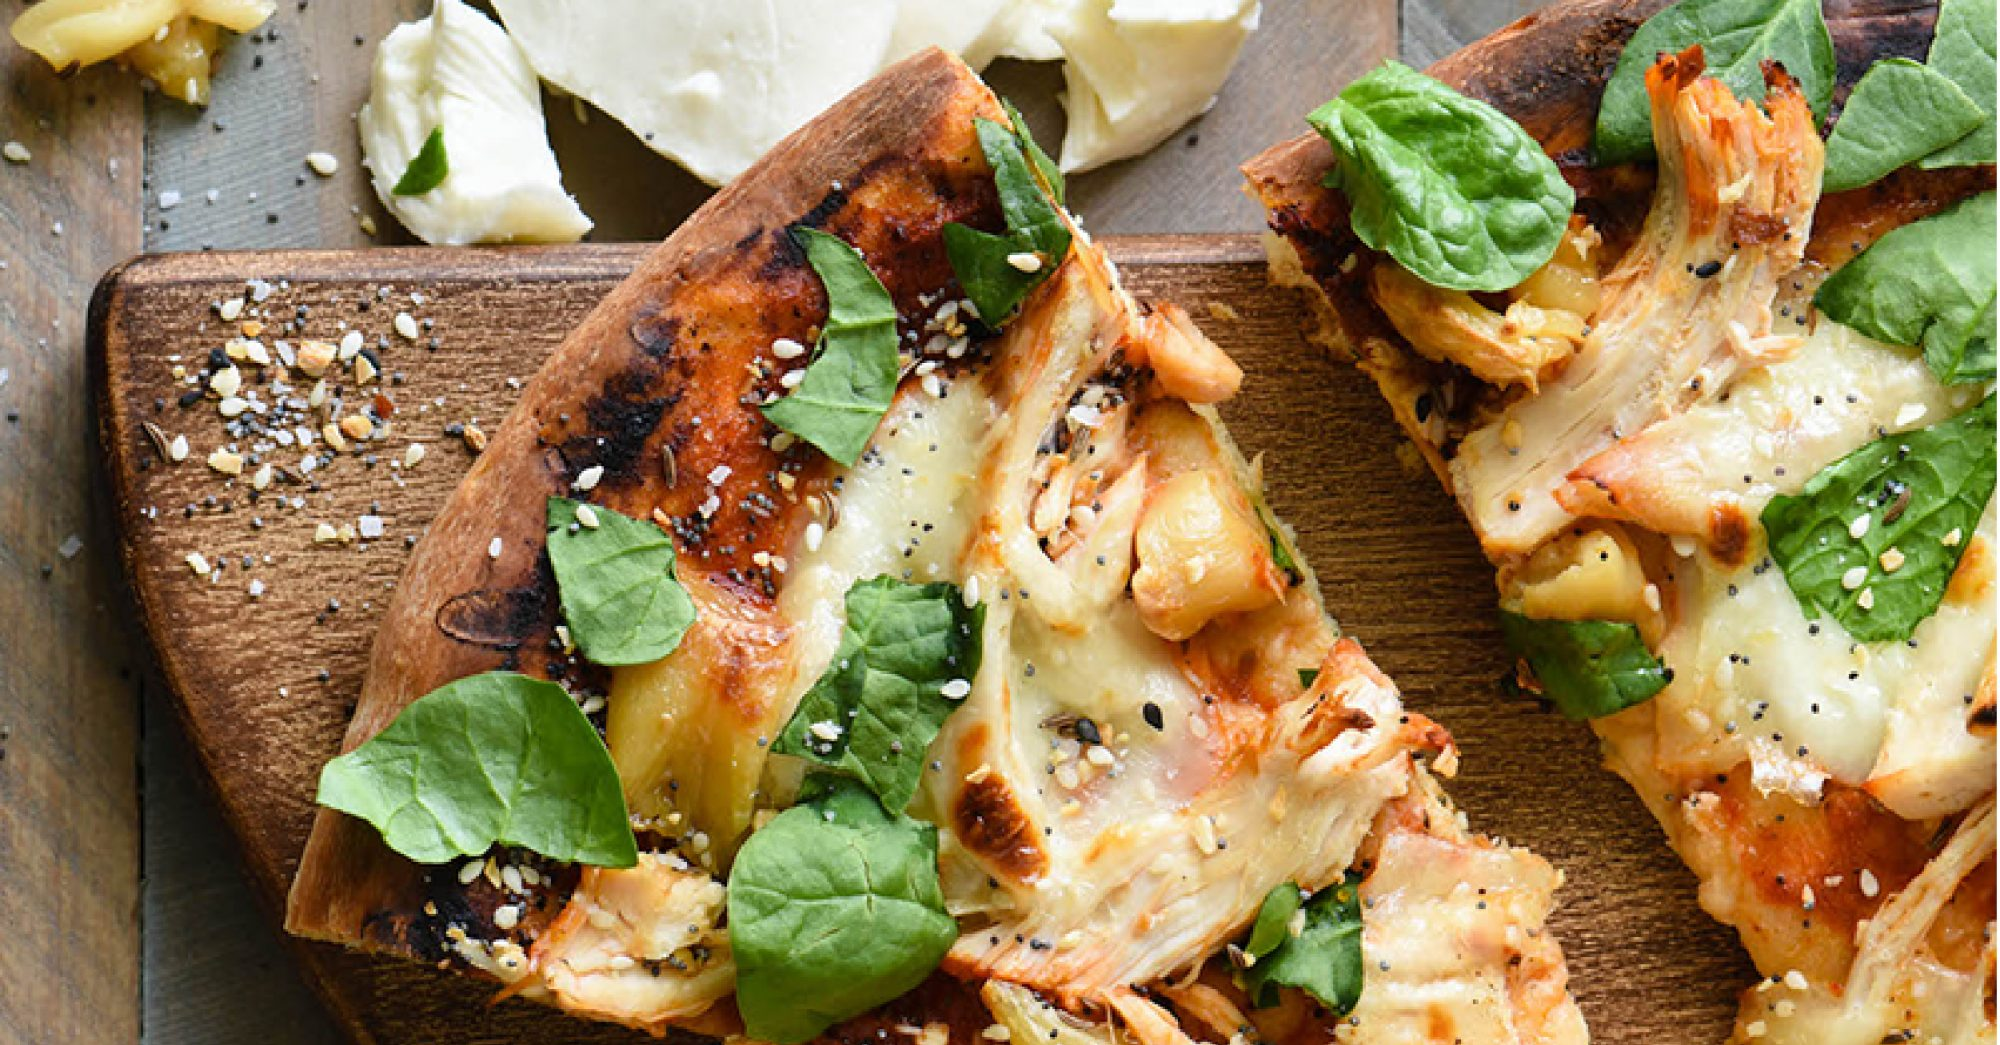 Grilled Chicken Pizza with Mozzarella and Roasted Garlic image